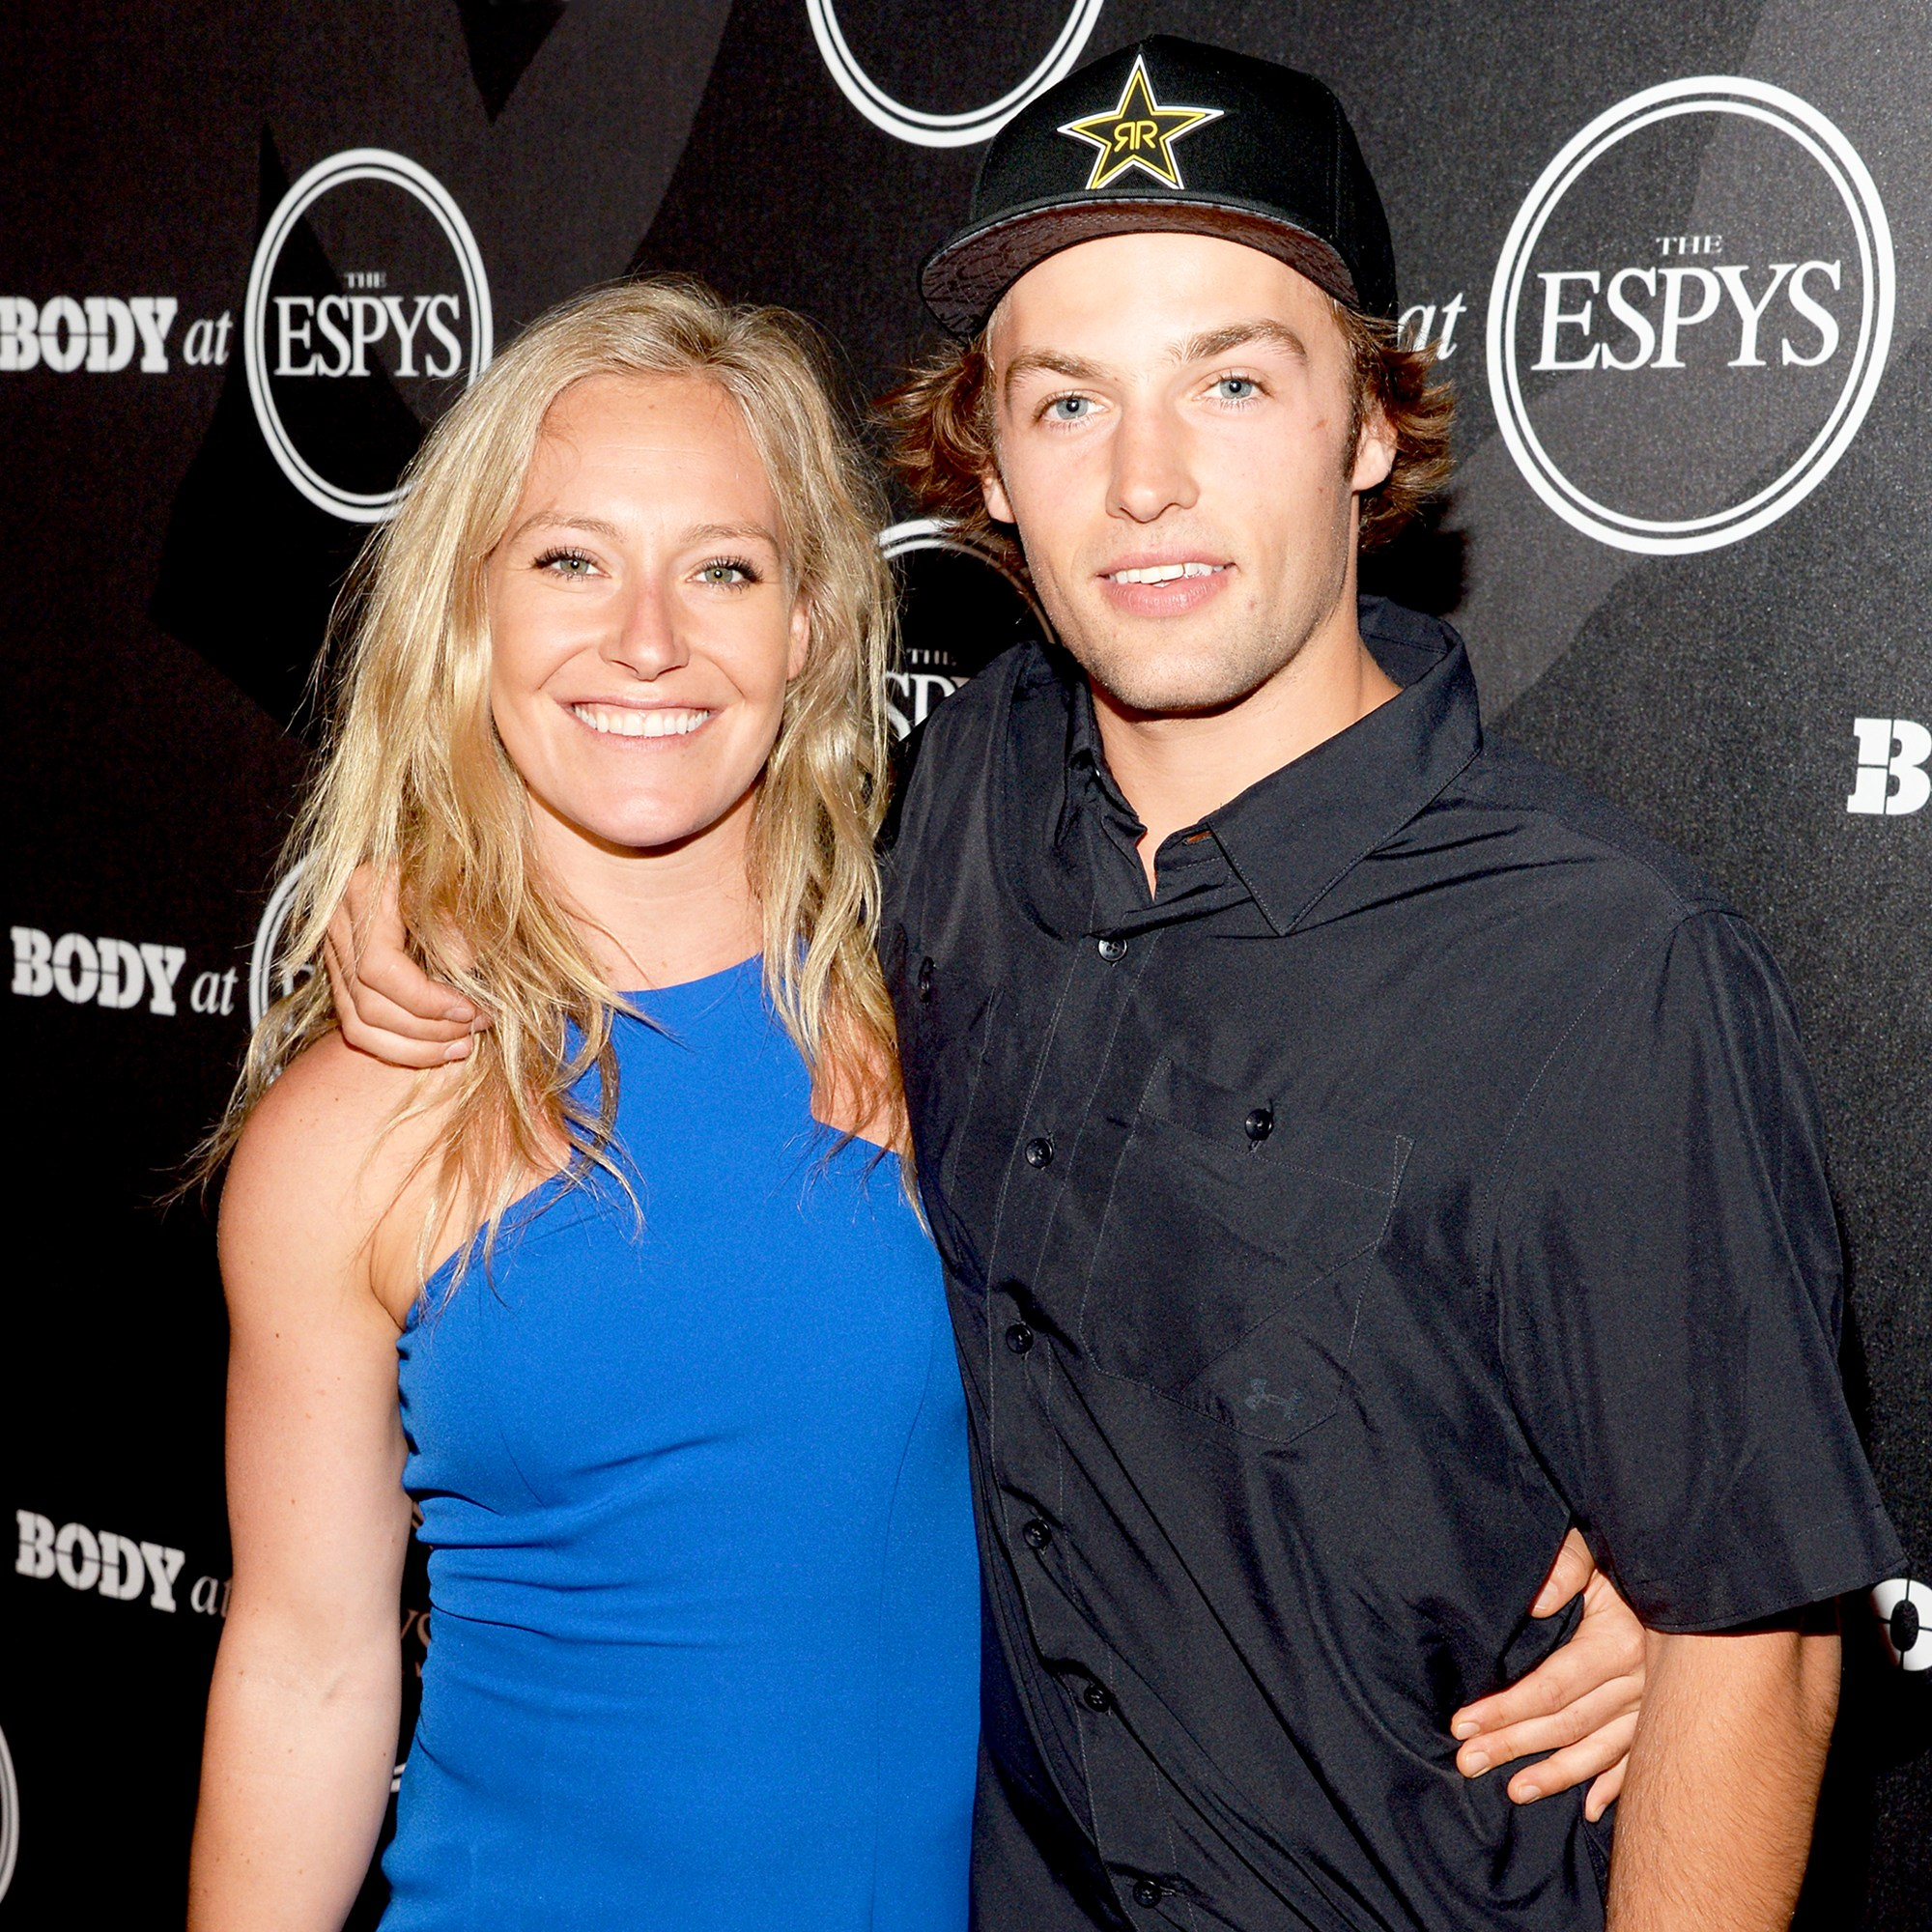 Jamie Anderson and Tyler Nicholson at the BODY at ESPYS 2016 Event at Avalon in Hollywood, California.